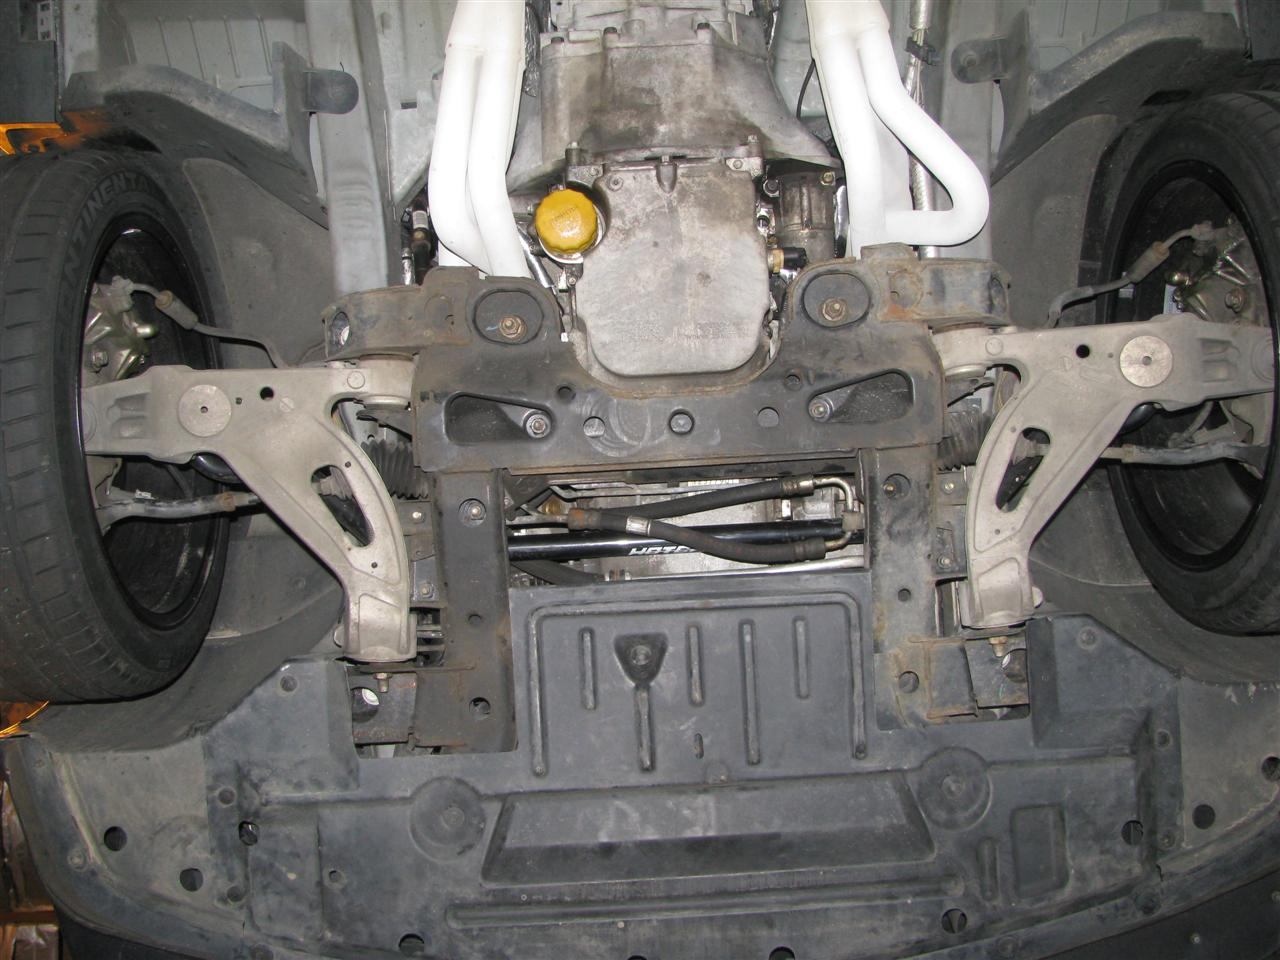 Index of /thepno95/Pictures/CTS-V pics/Suspension and Chassis/Underside